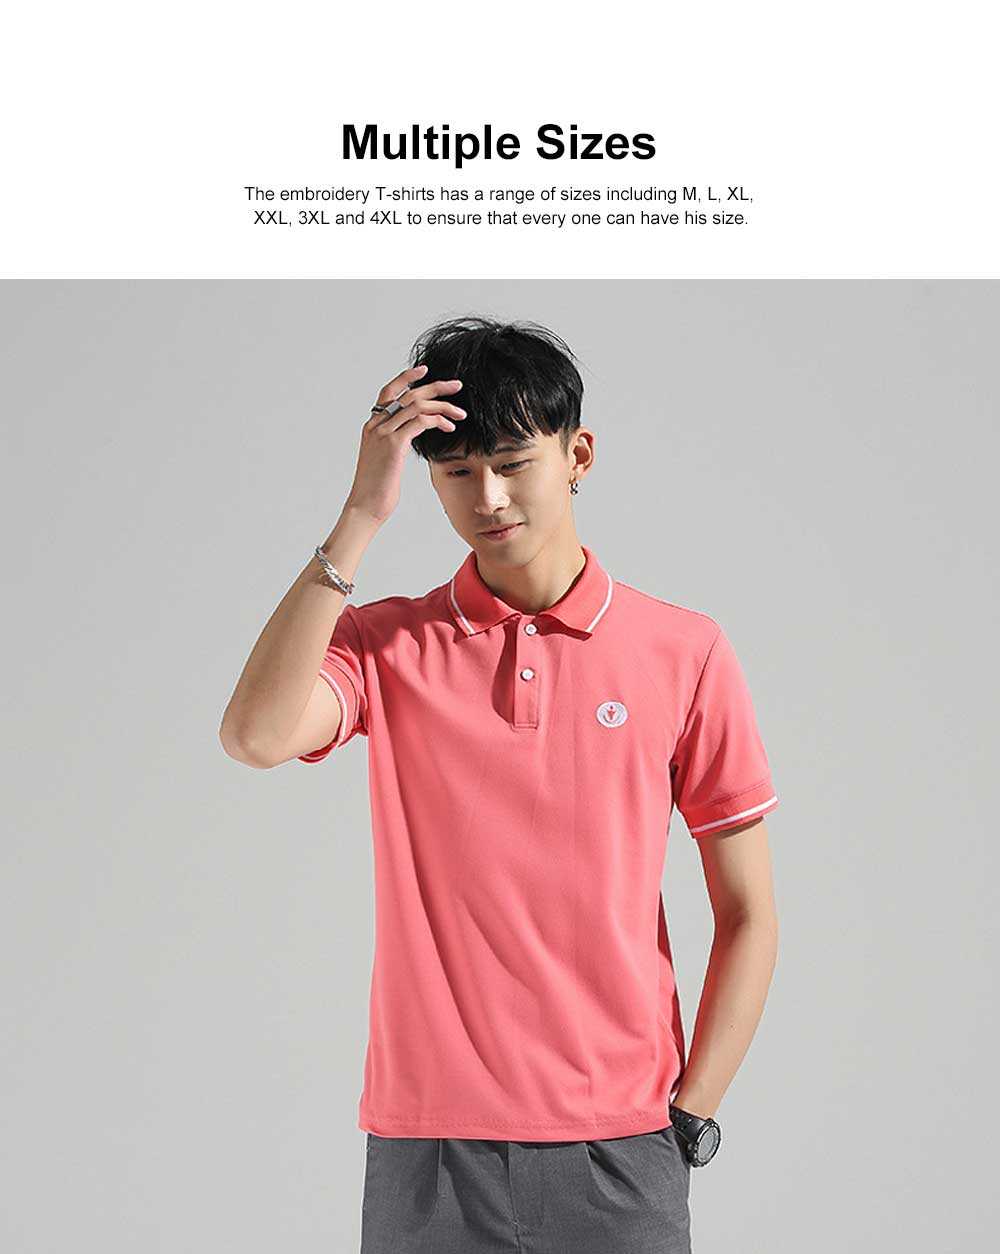 Embroidery T-shirt for Male Daily Wear 2019 Summer, Casually Turn-down Collar Top for Students, Youth Man All-match Polo Shirt 1